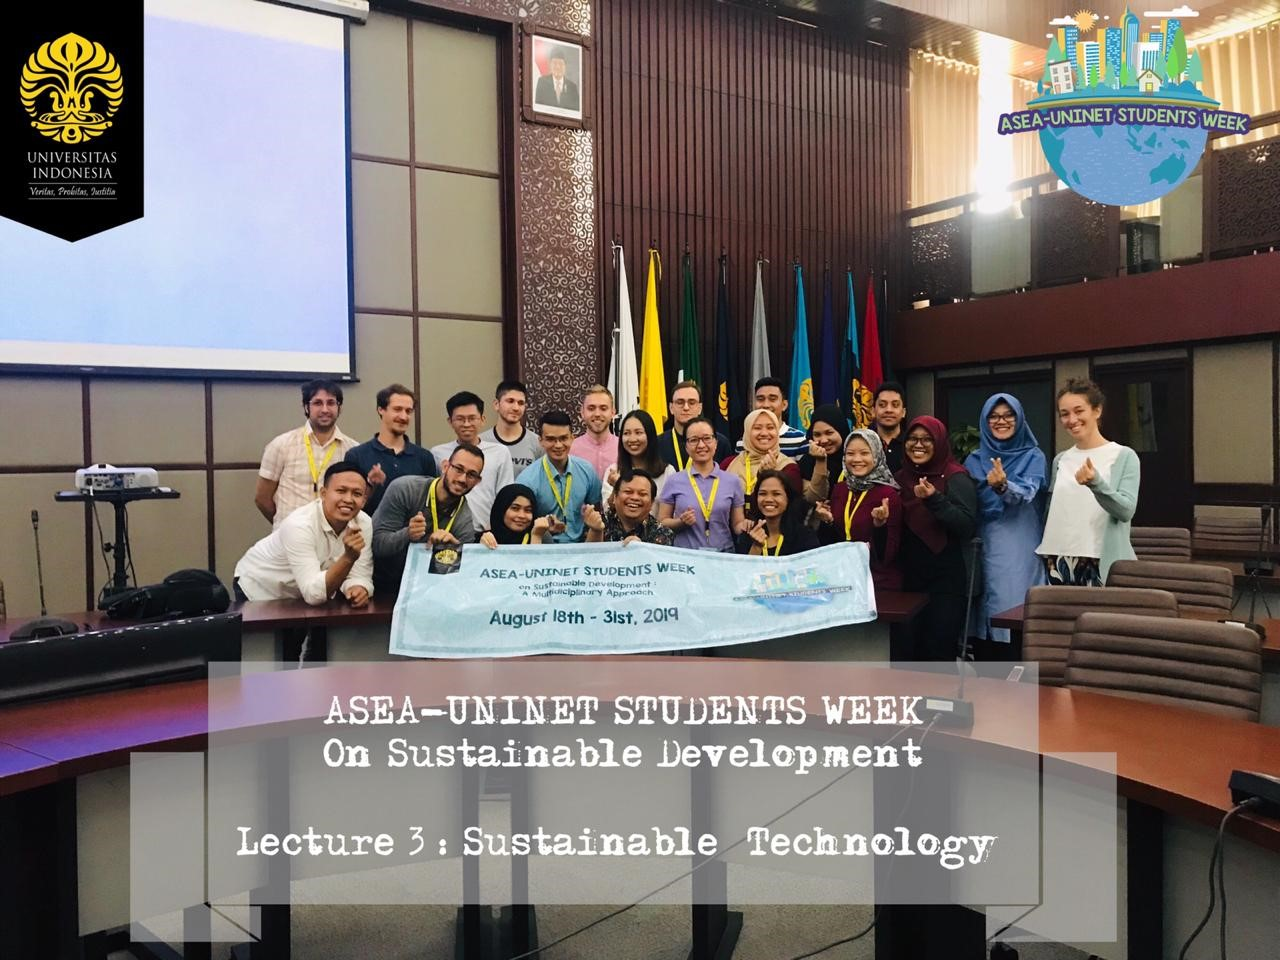 ASEA-UNINET Students Week on Sustainable Development 2019 - Lecutre on Sustainable Technology